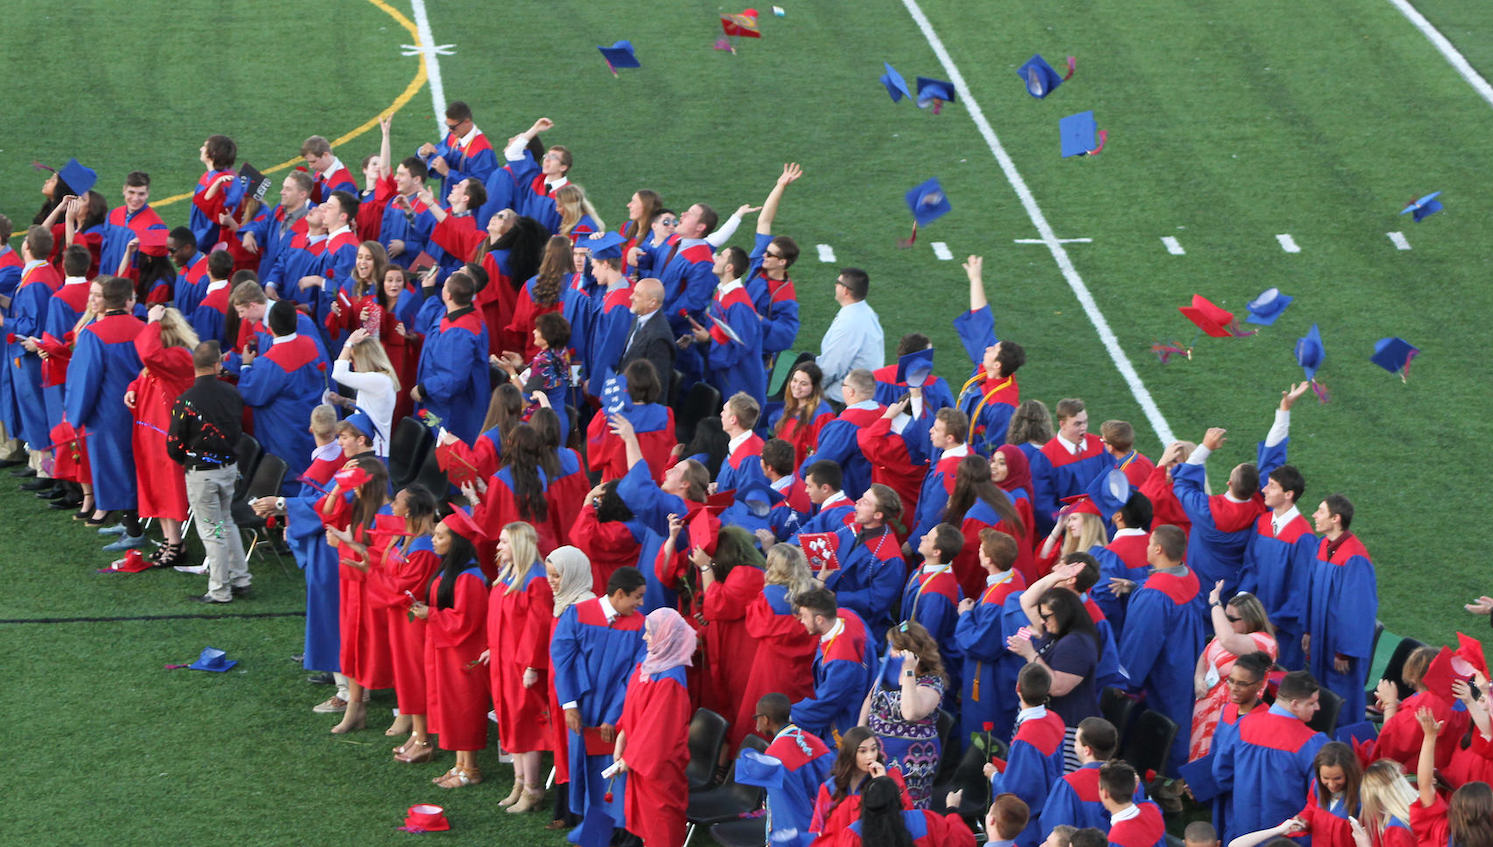 Chartiers Valley Class of 2017 graduates toss their caps in their air at their commencement ceremony.